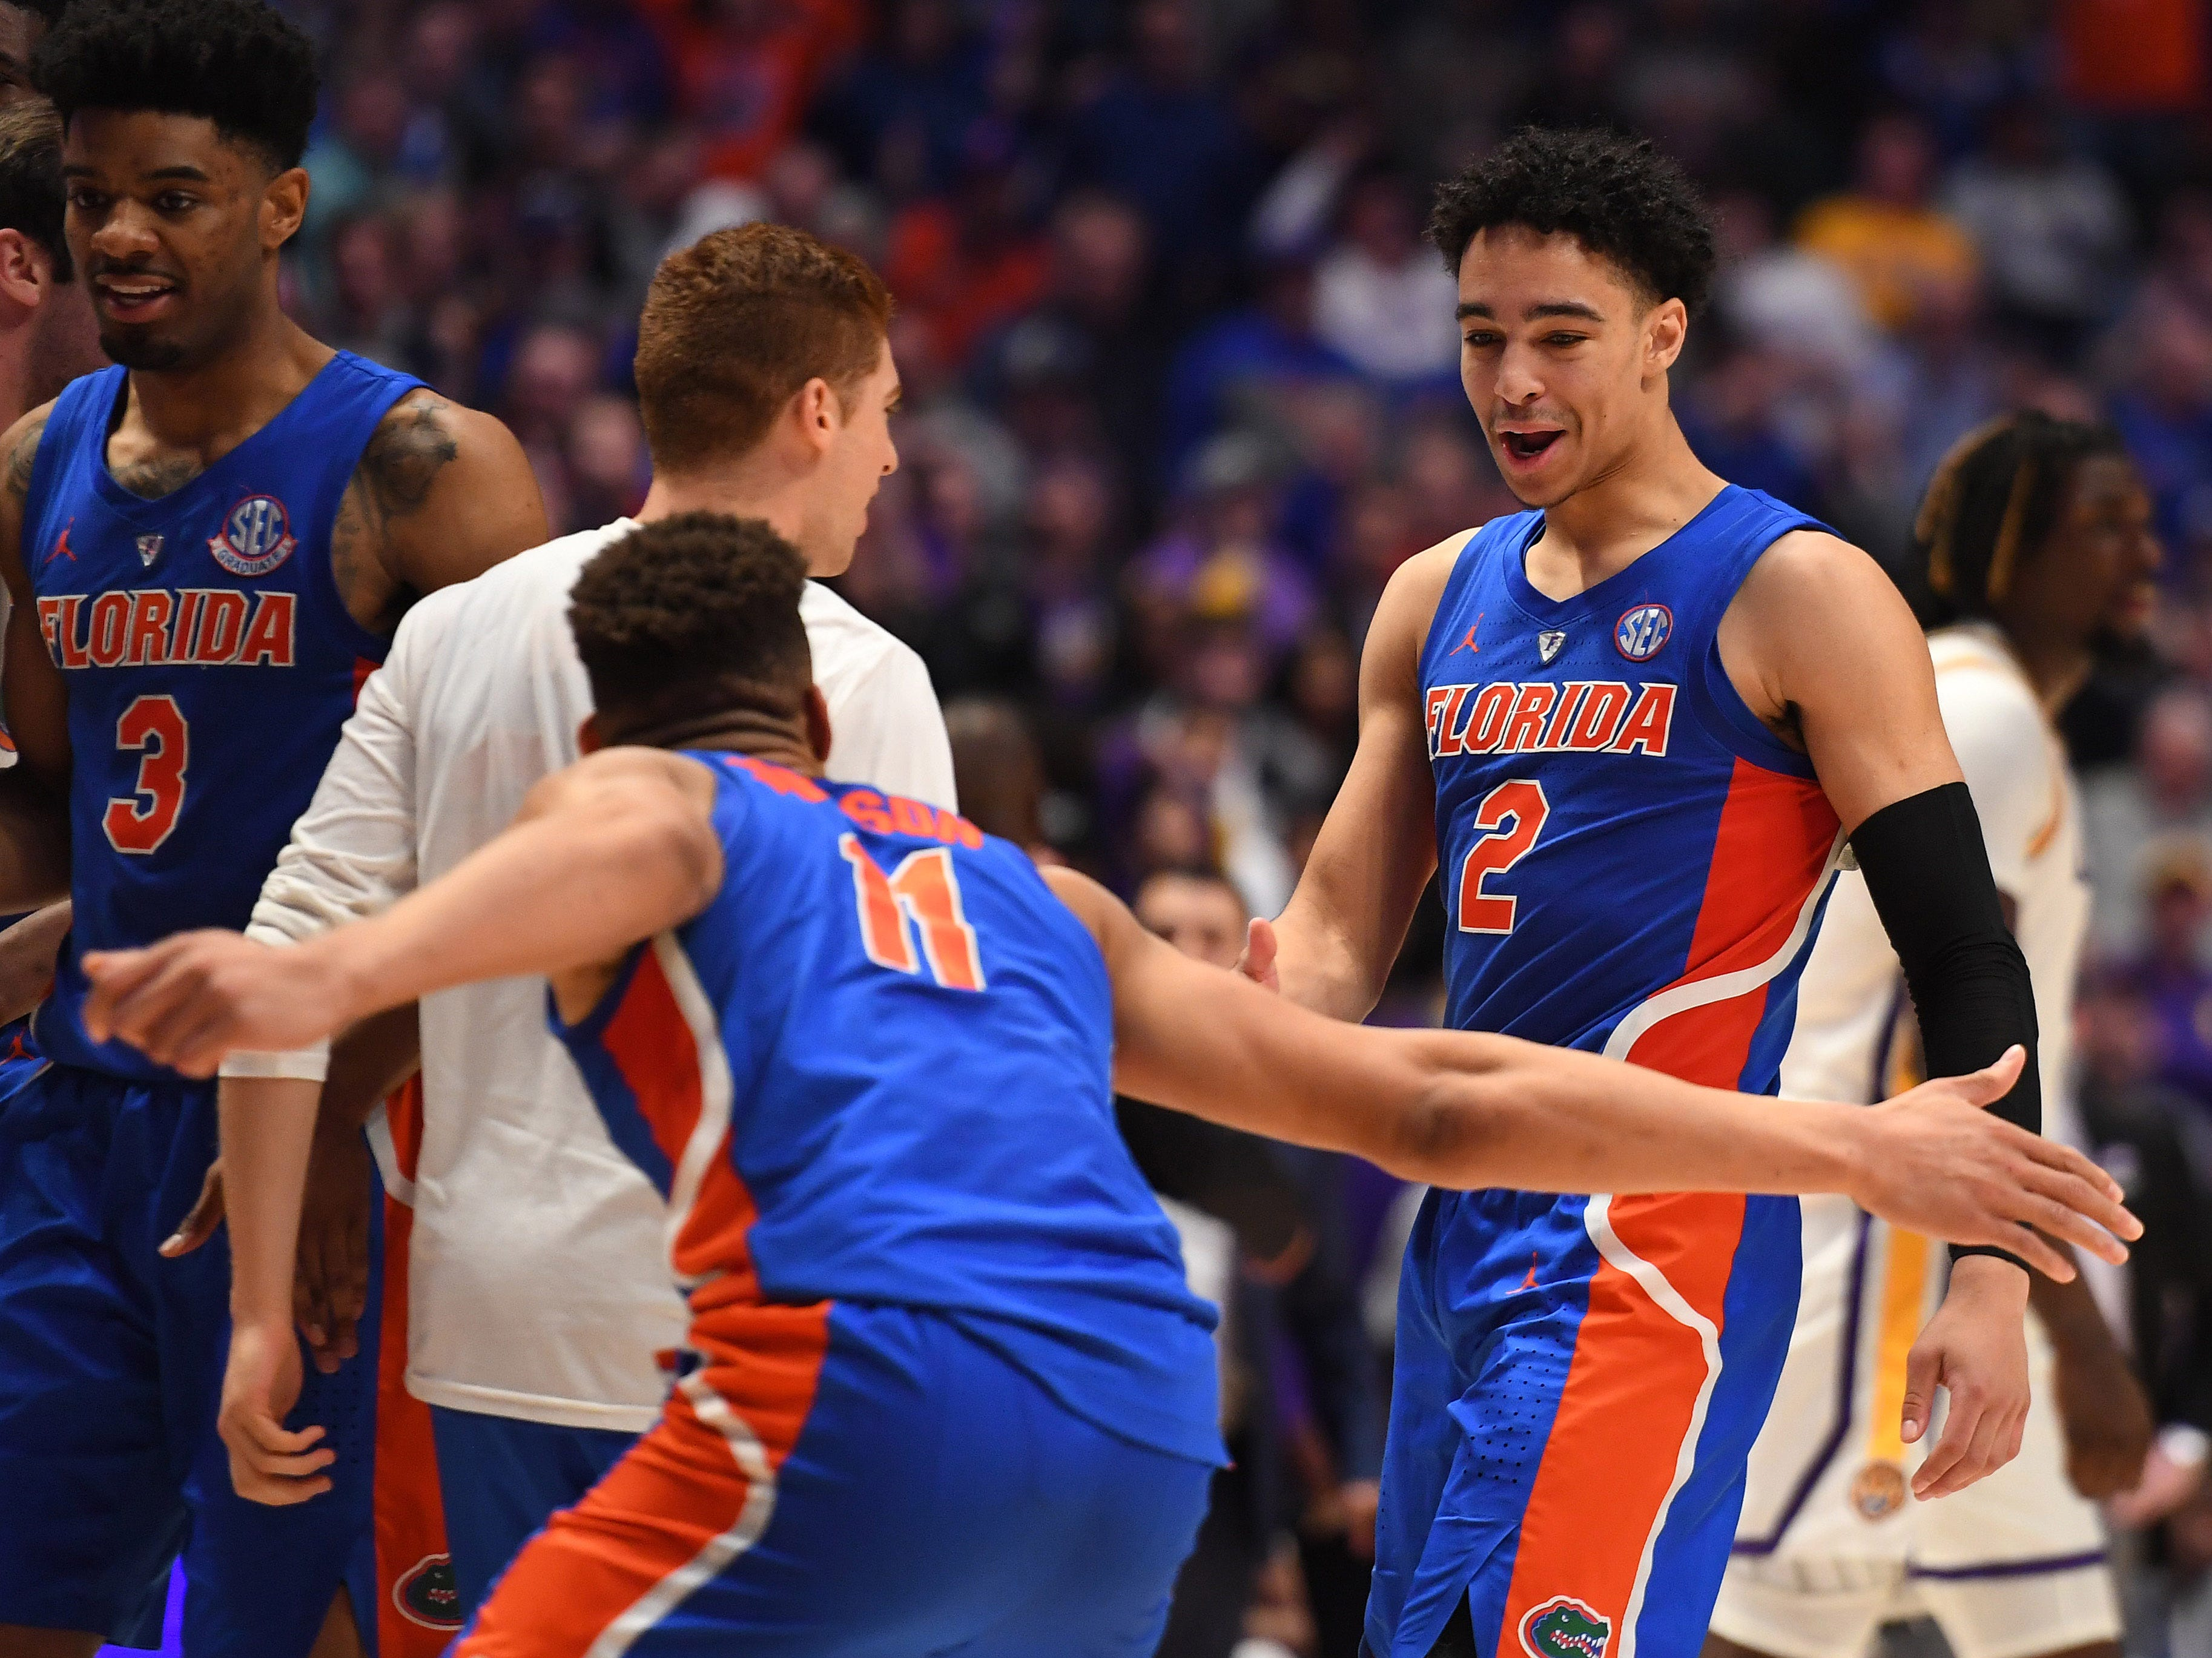 Mar 15, 2019; Nashville, TN, USA; Florida Gators guard Andrew Nembhard (2) celebrates with Gators forward Keyontae Johnson (11) after scoring the game-winning shot against the LSU Tigers during the second half of the SEC conference tournament at Bridgestone Arena. Mandatory Credit: Christopher Hanewinckel-USA TODAY Sports